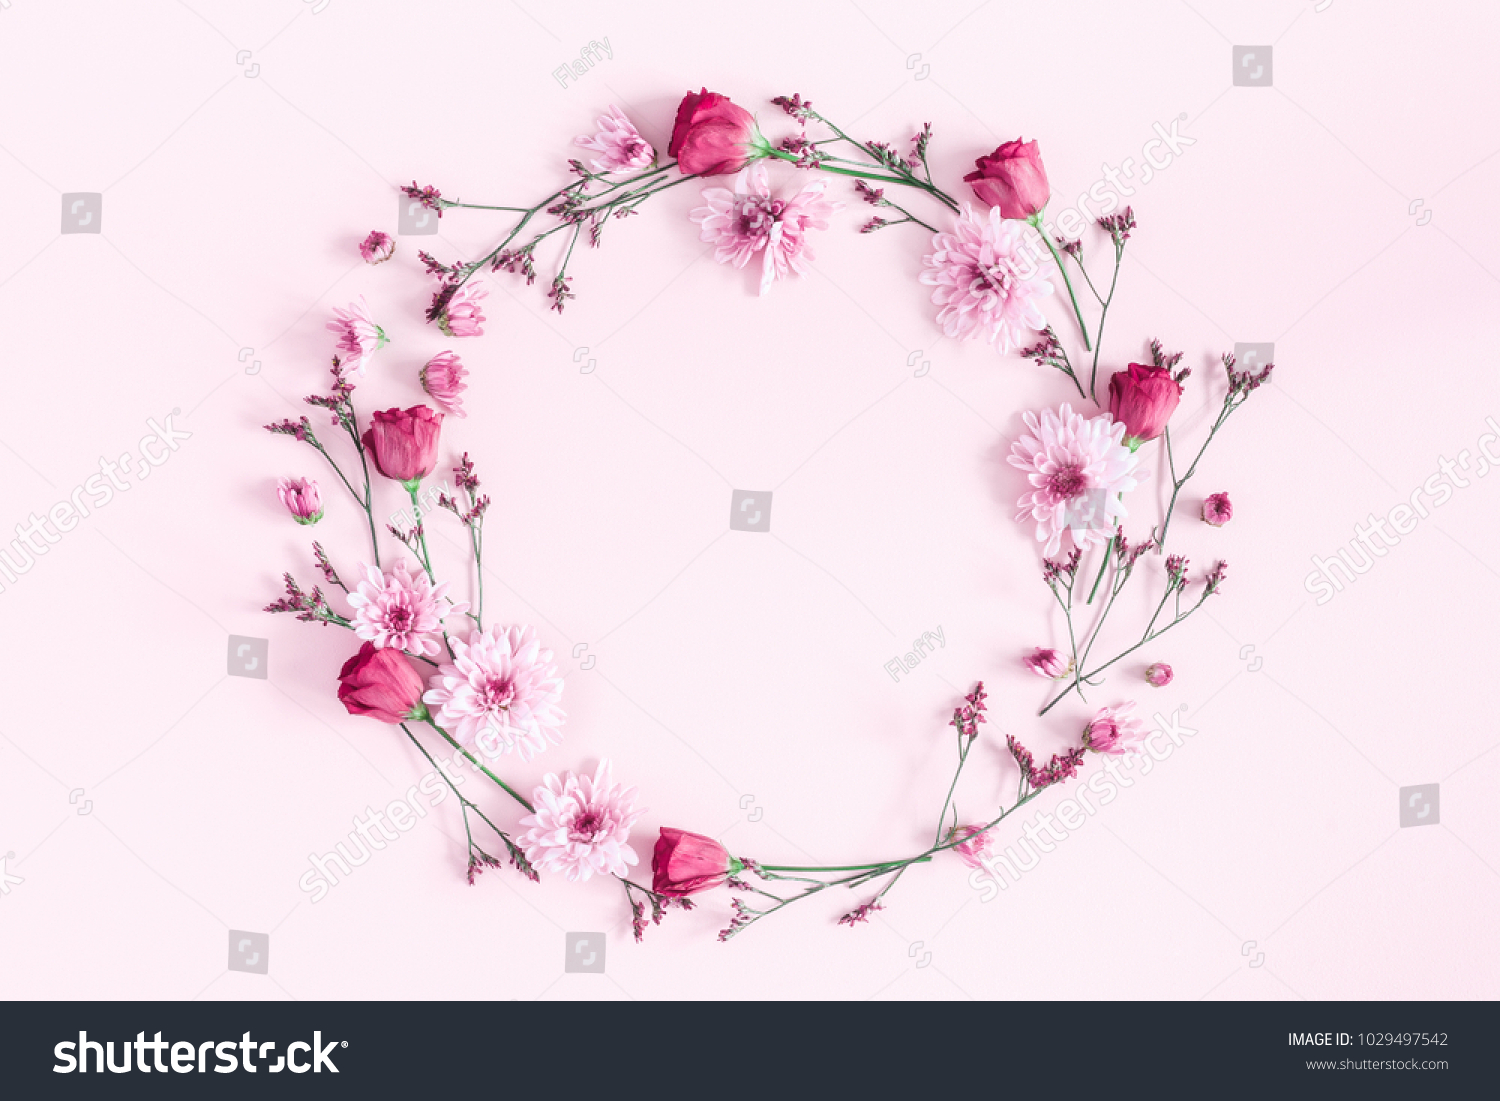 Flowers composition. Wreath made of pink flowers on pink background. Flat lay, top view, copy space #1029497542